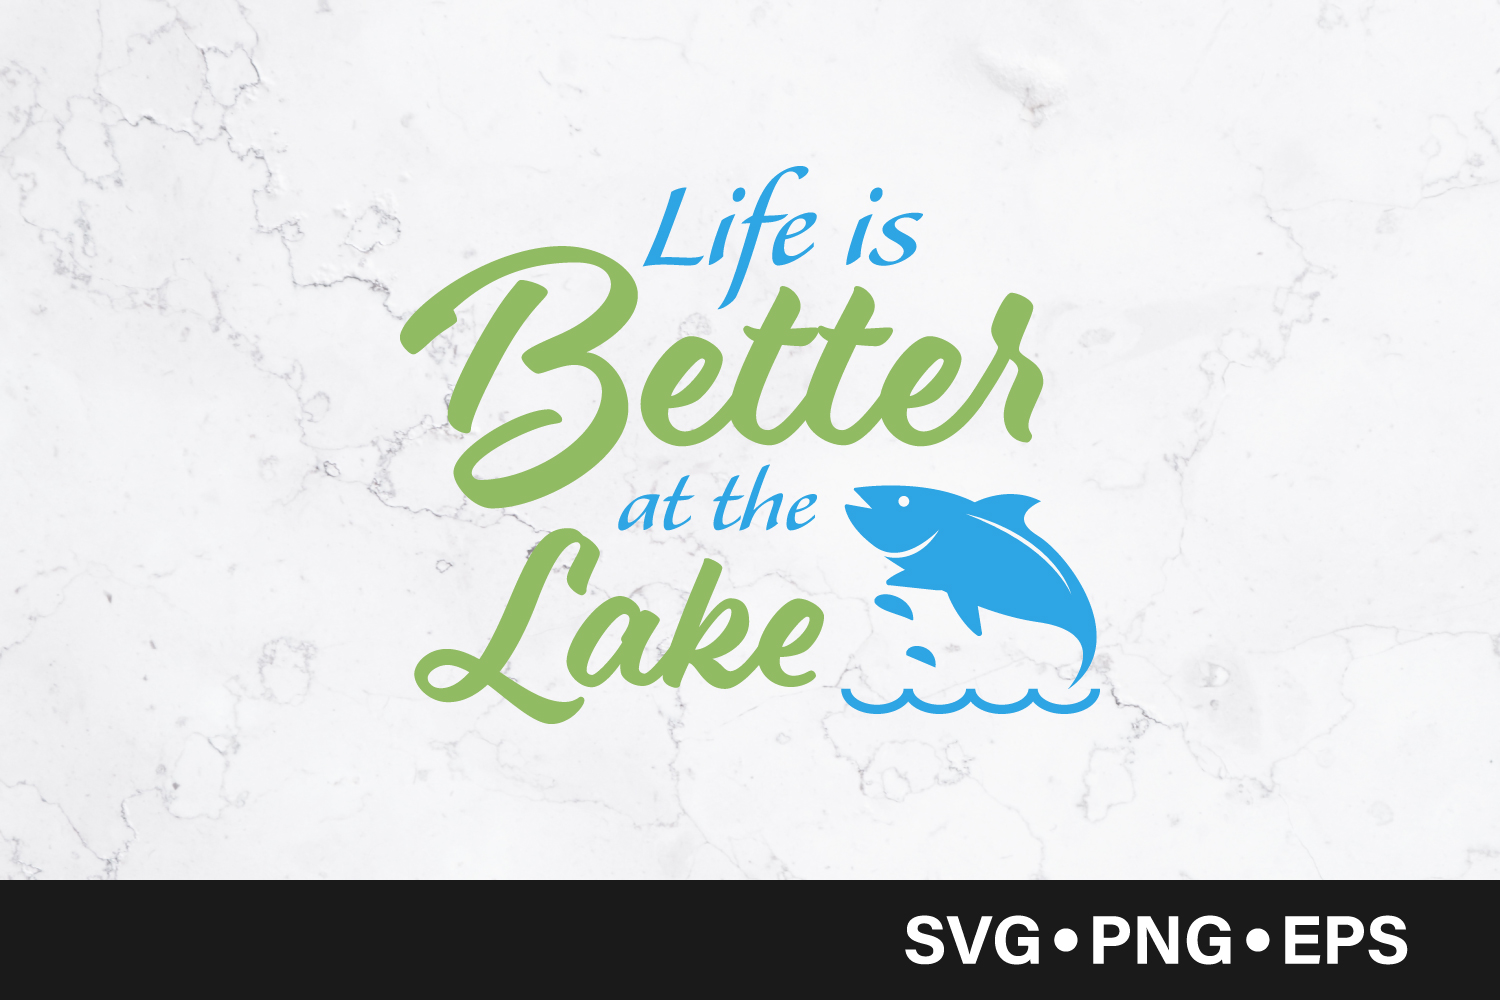 Download Free Life Is Better At The Lake Quote Graphic By Vectorbundles for Cricut Explore, Silhouette and other cutting machines.